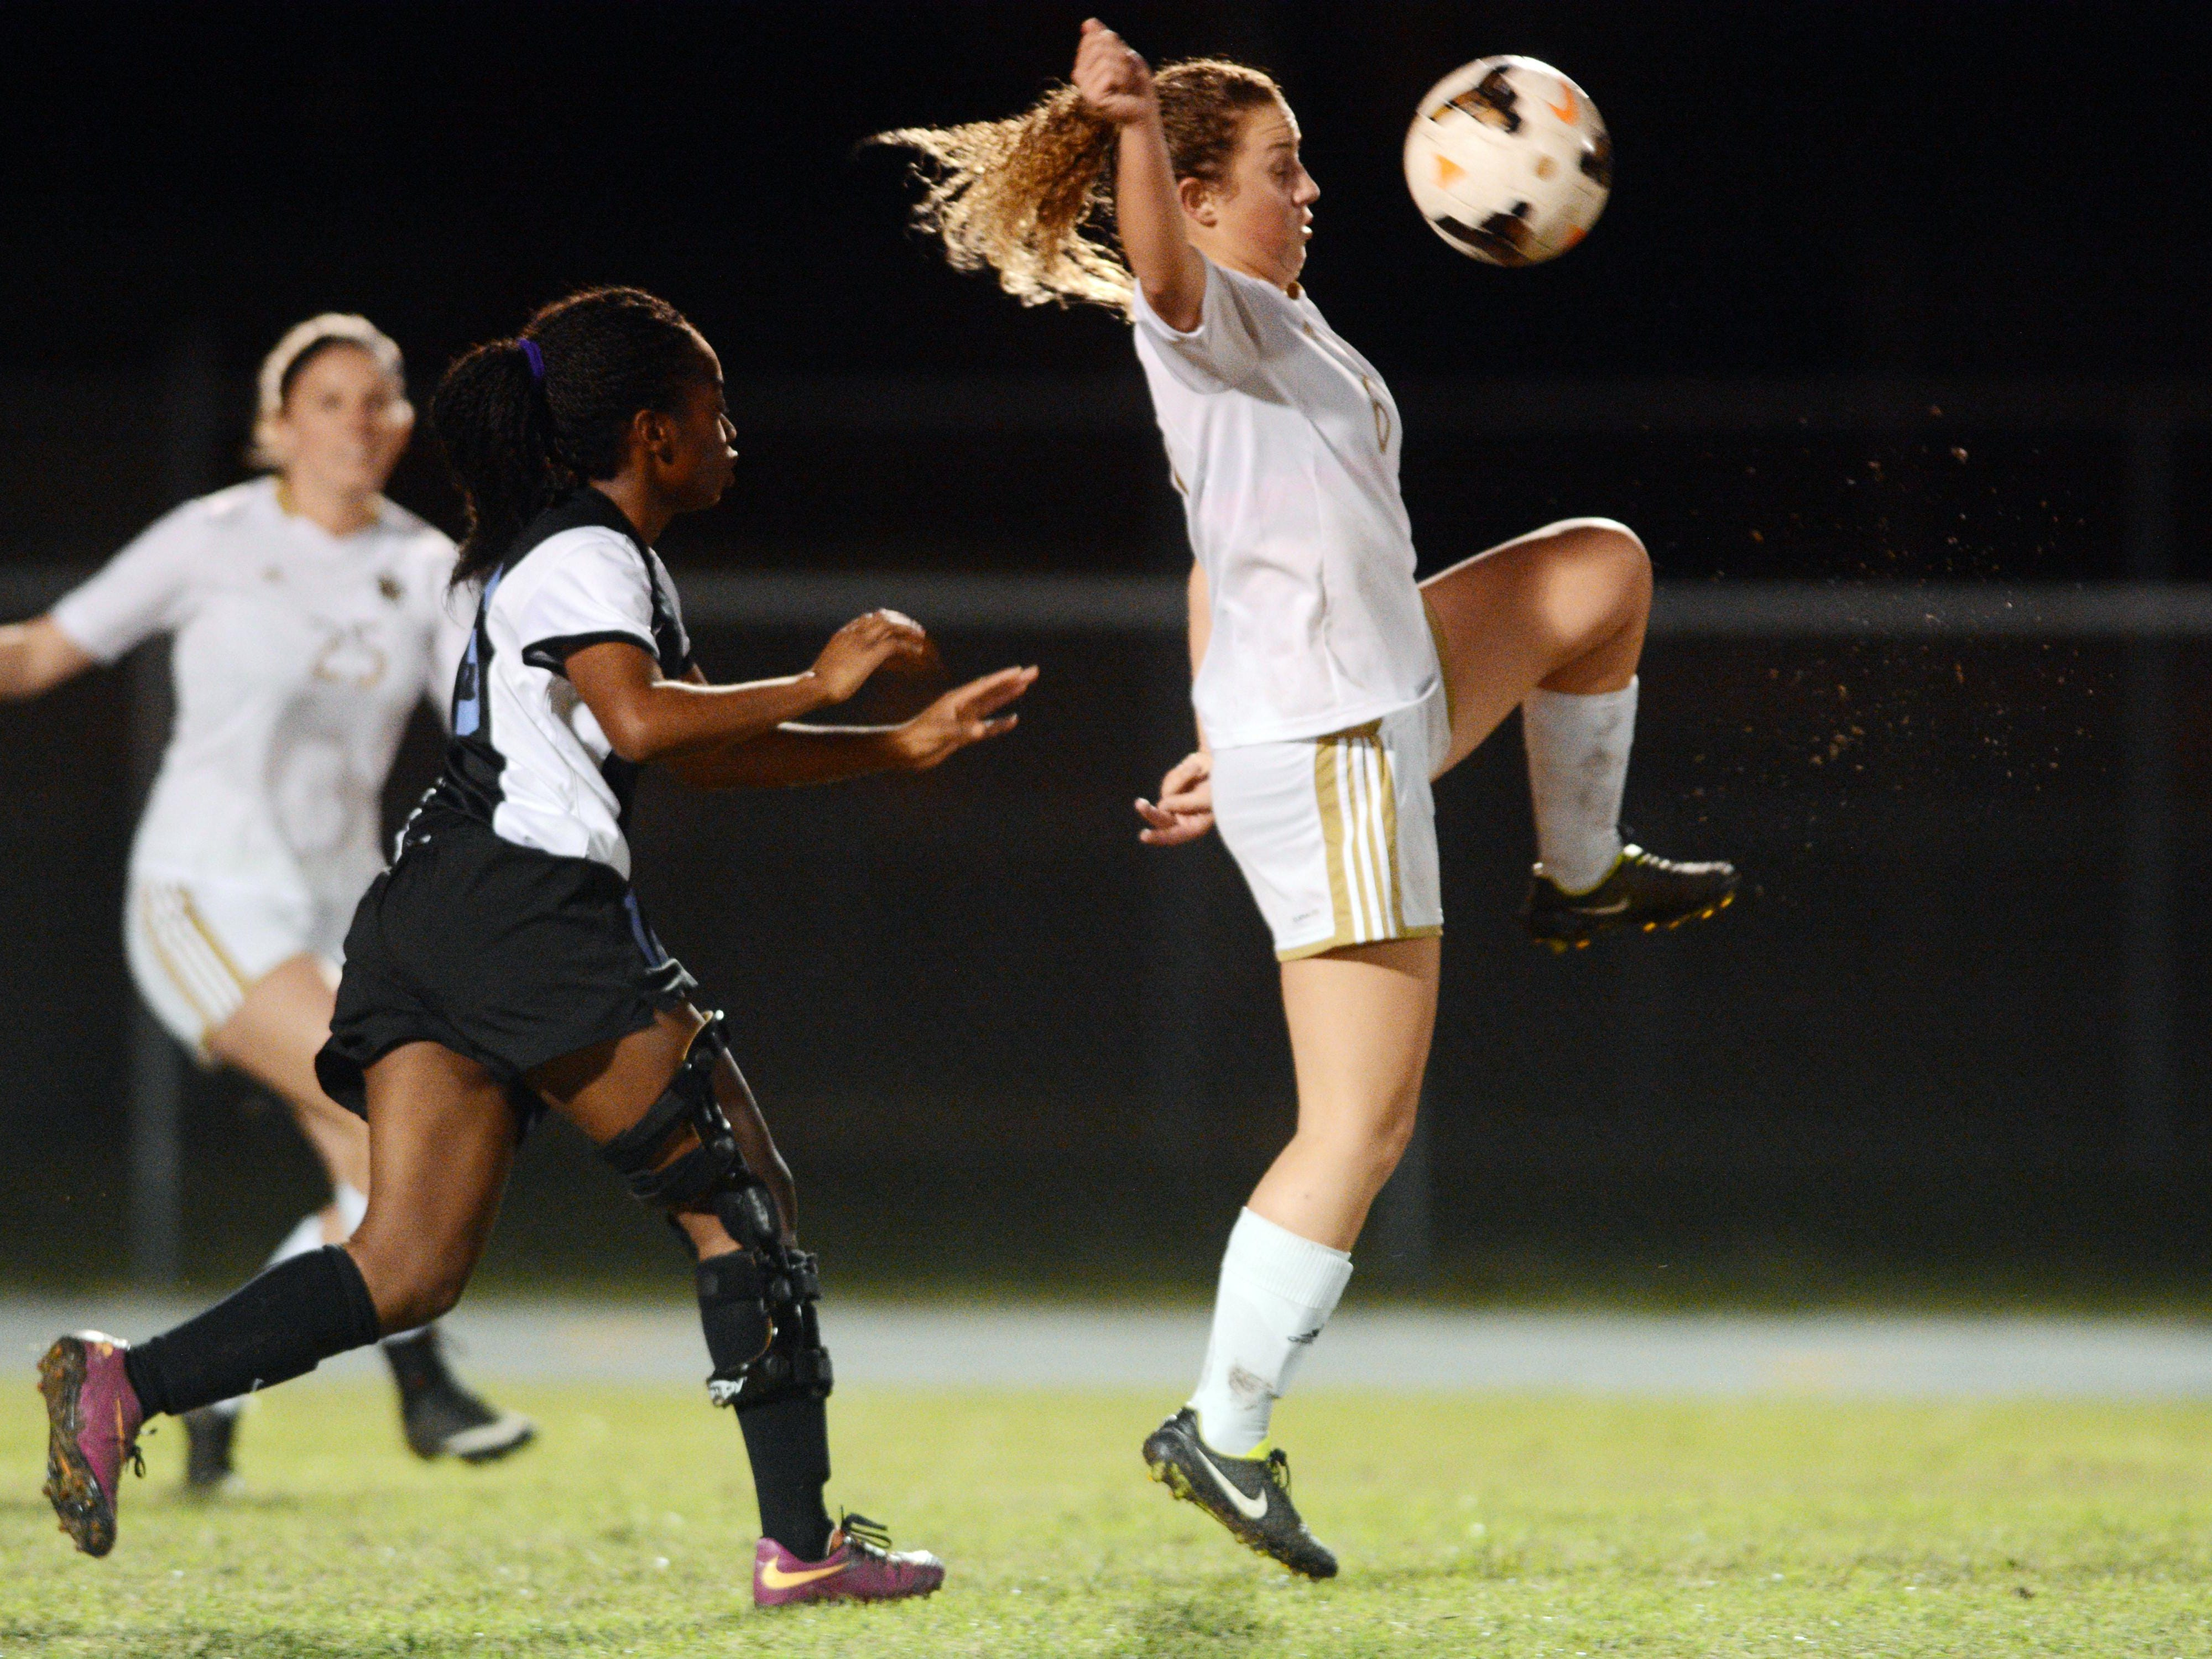 Merritt Island's Julia Martin (right) settles the ball in front of Rockledge player Cierra Cadore during their district championship game Friday evening.